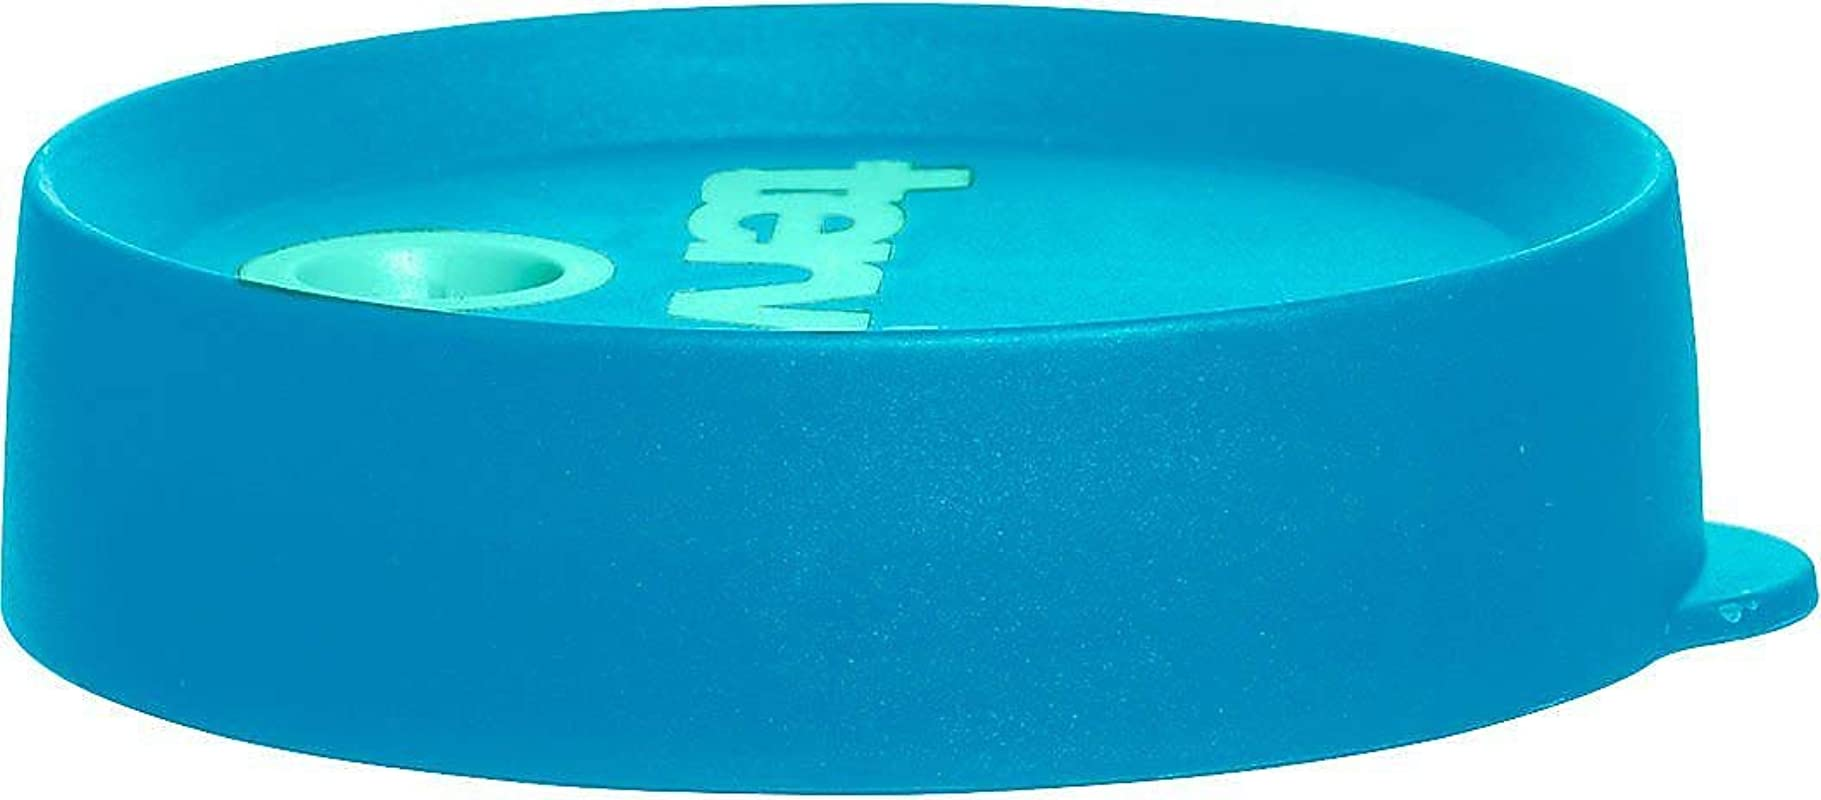 Tervis 16 Oz Turquoise Straw Lid Tervis One Size